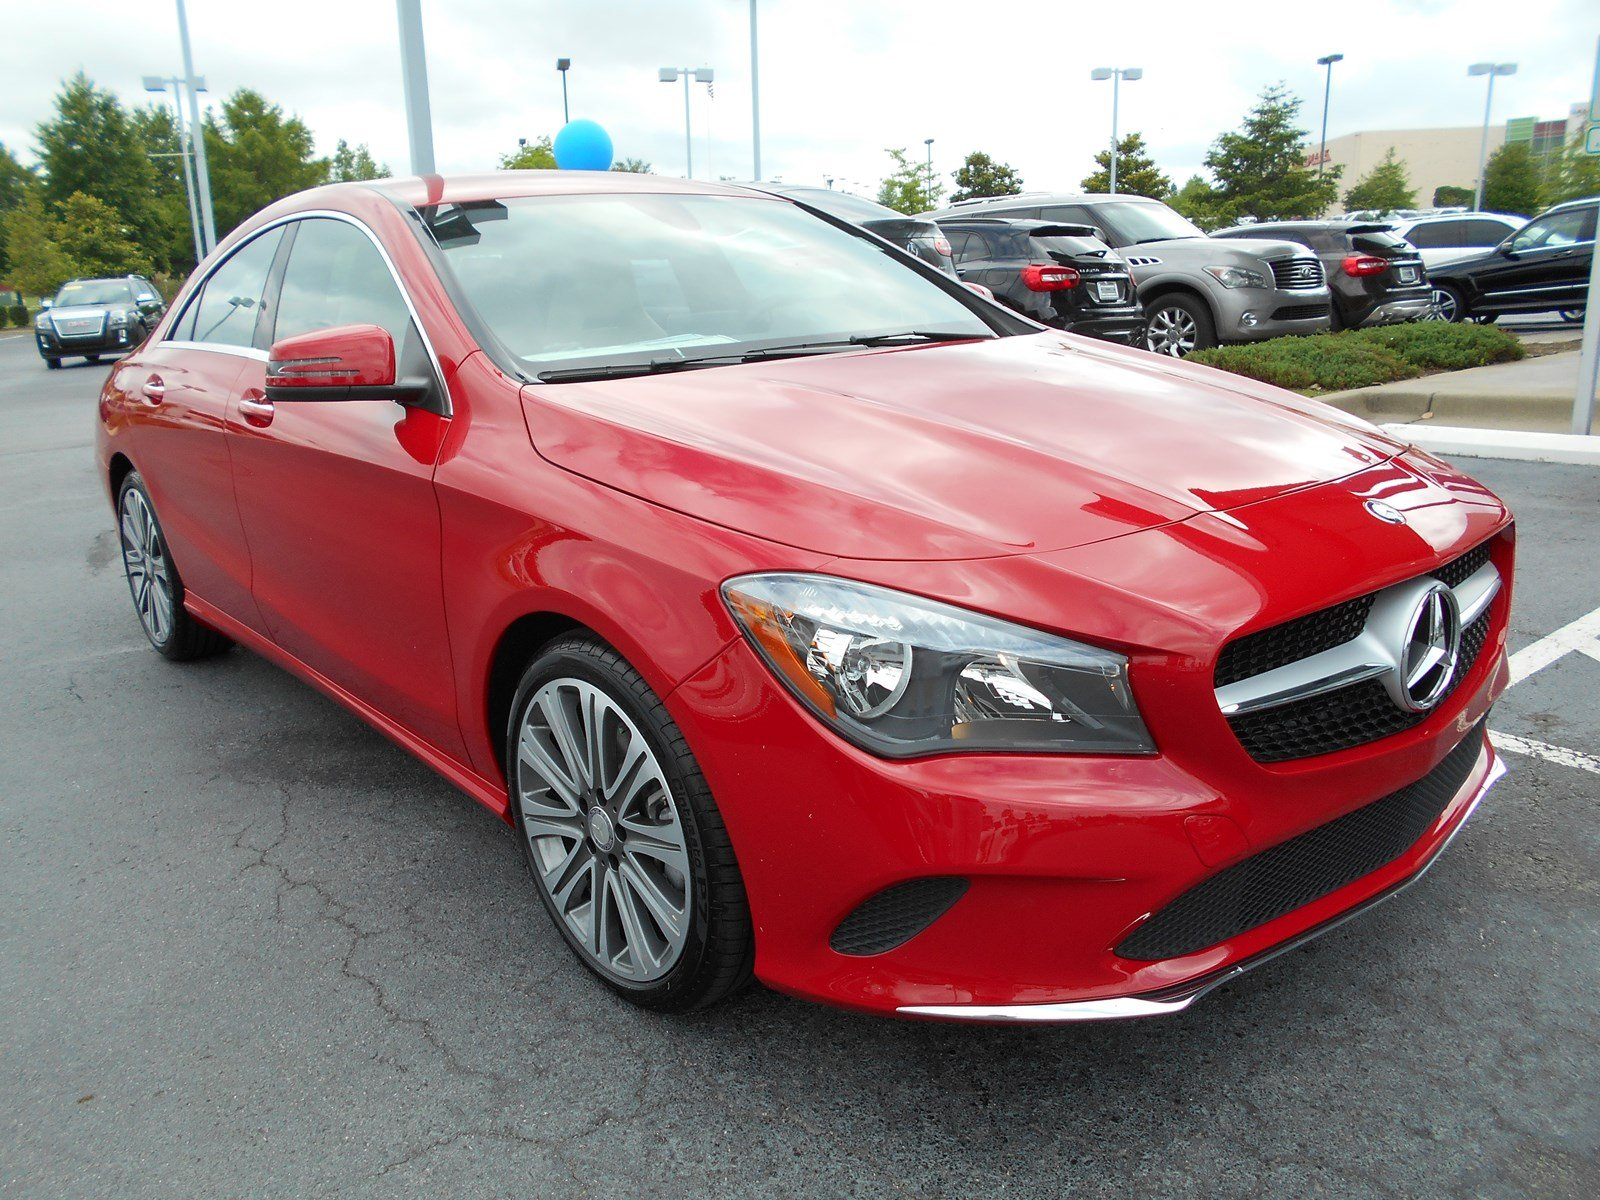 New 2018 mercedes benz cla cla 250 coupe in little rock for Mercedes benz cla 250 msrp